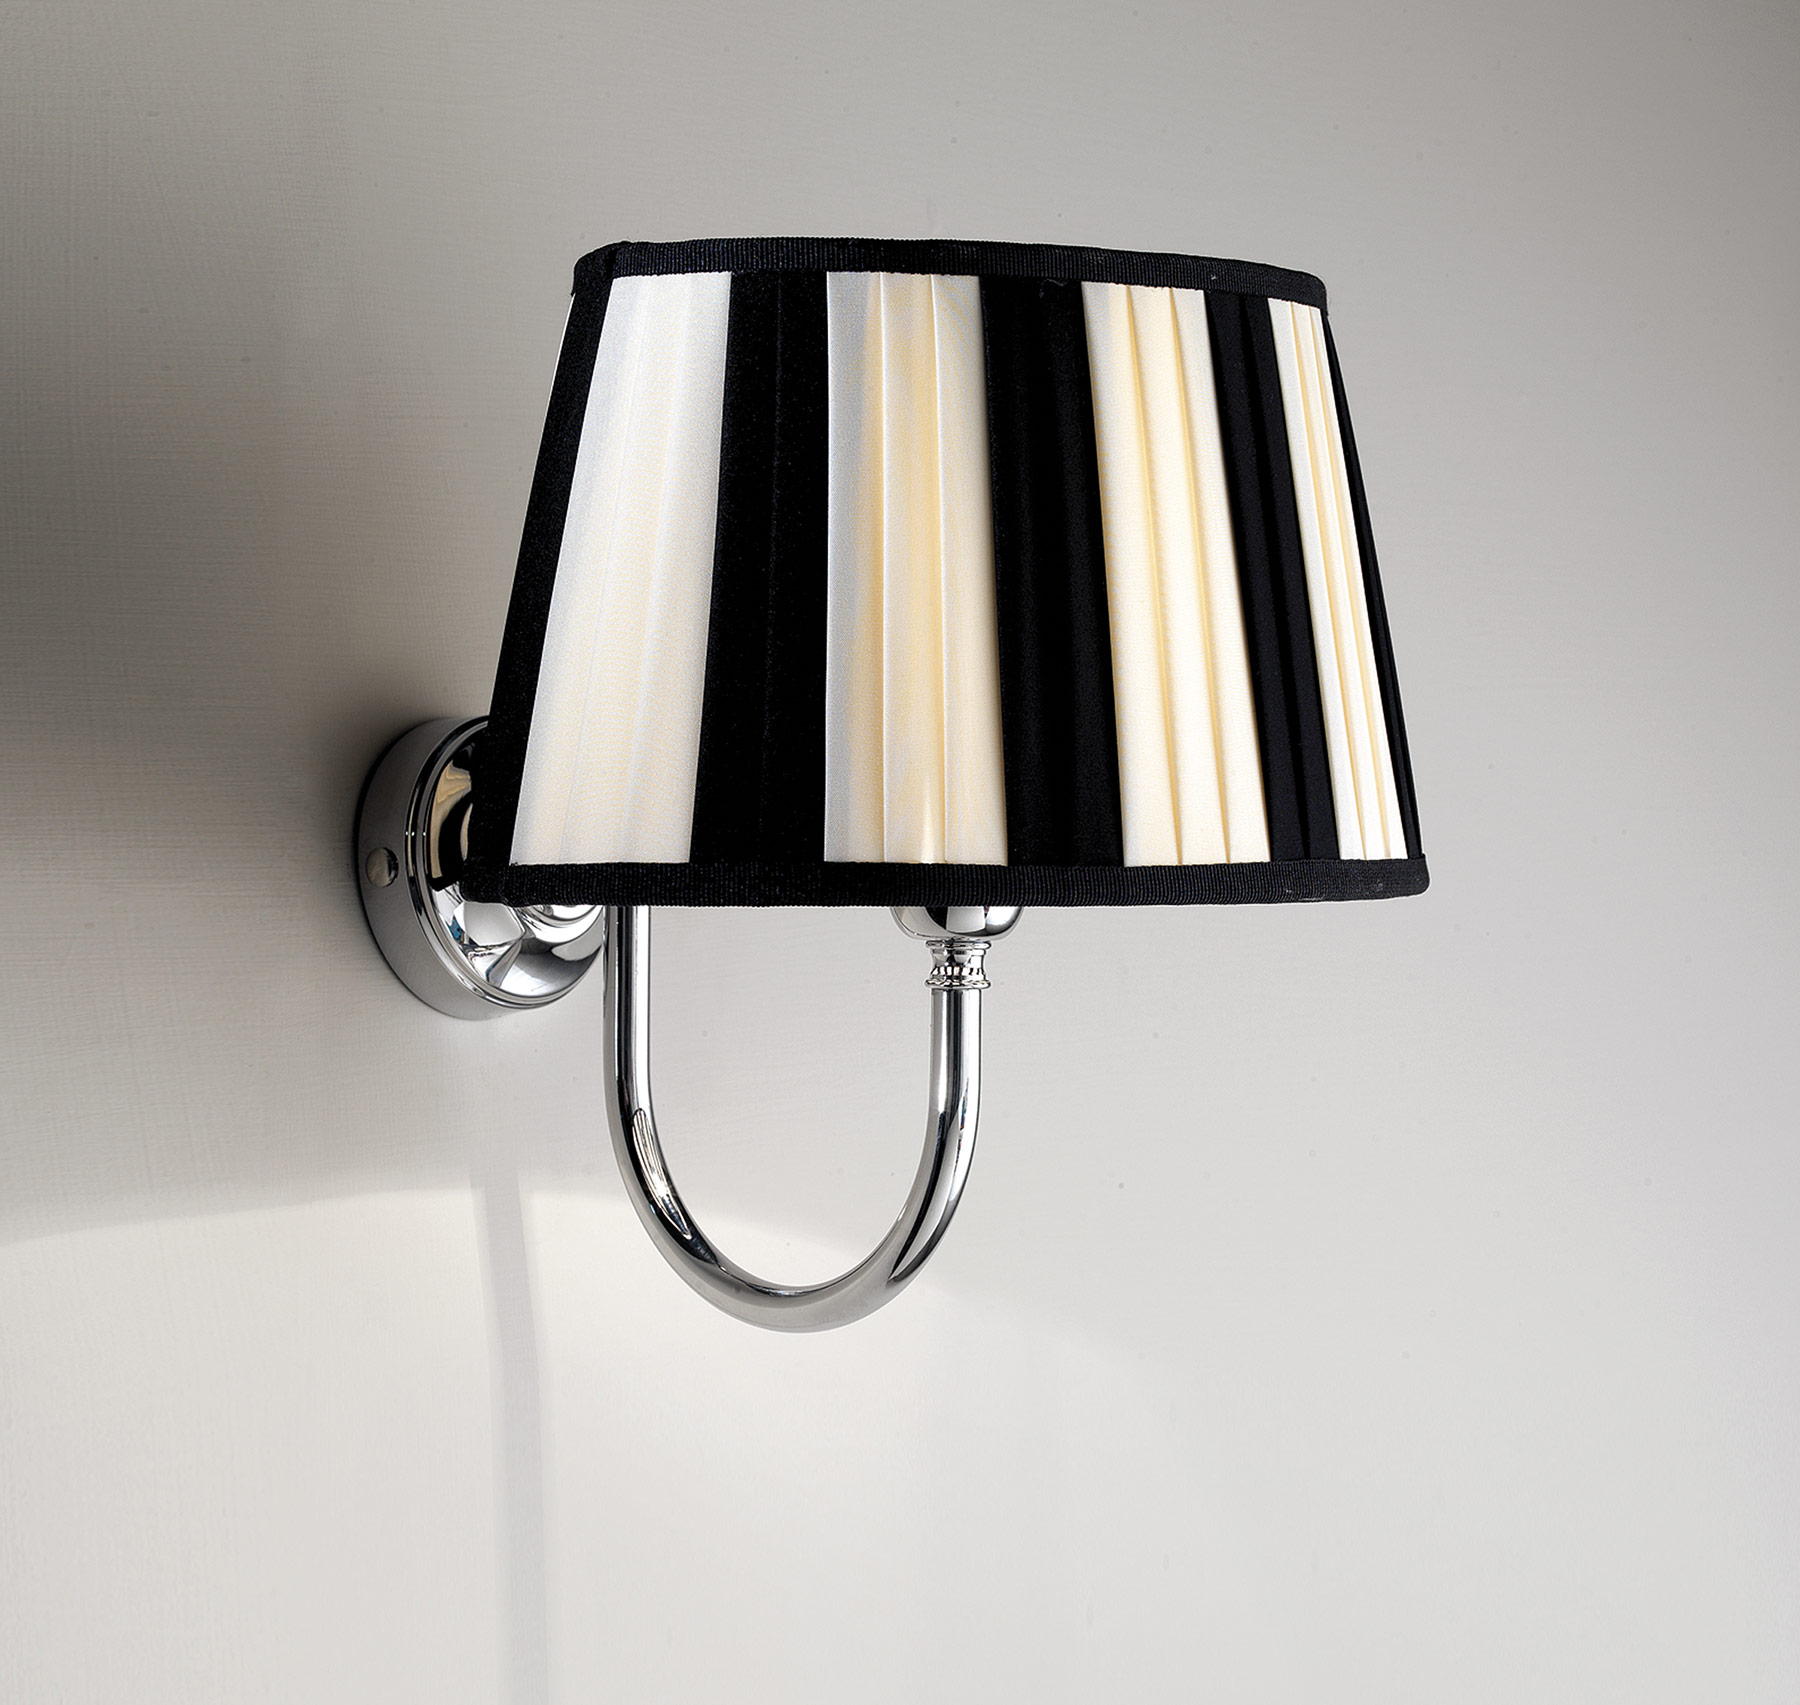 Traditional Decor Wall Mount Lamp